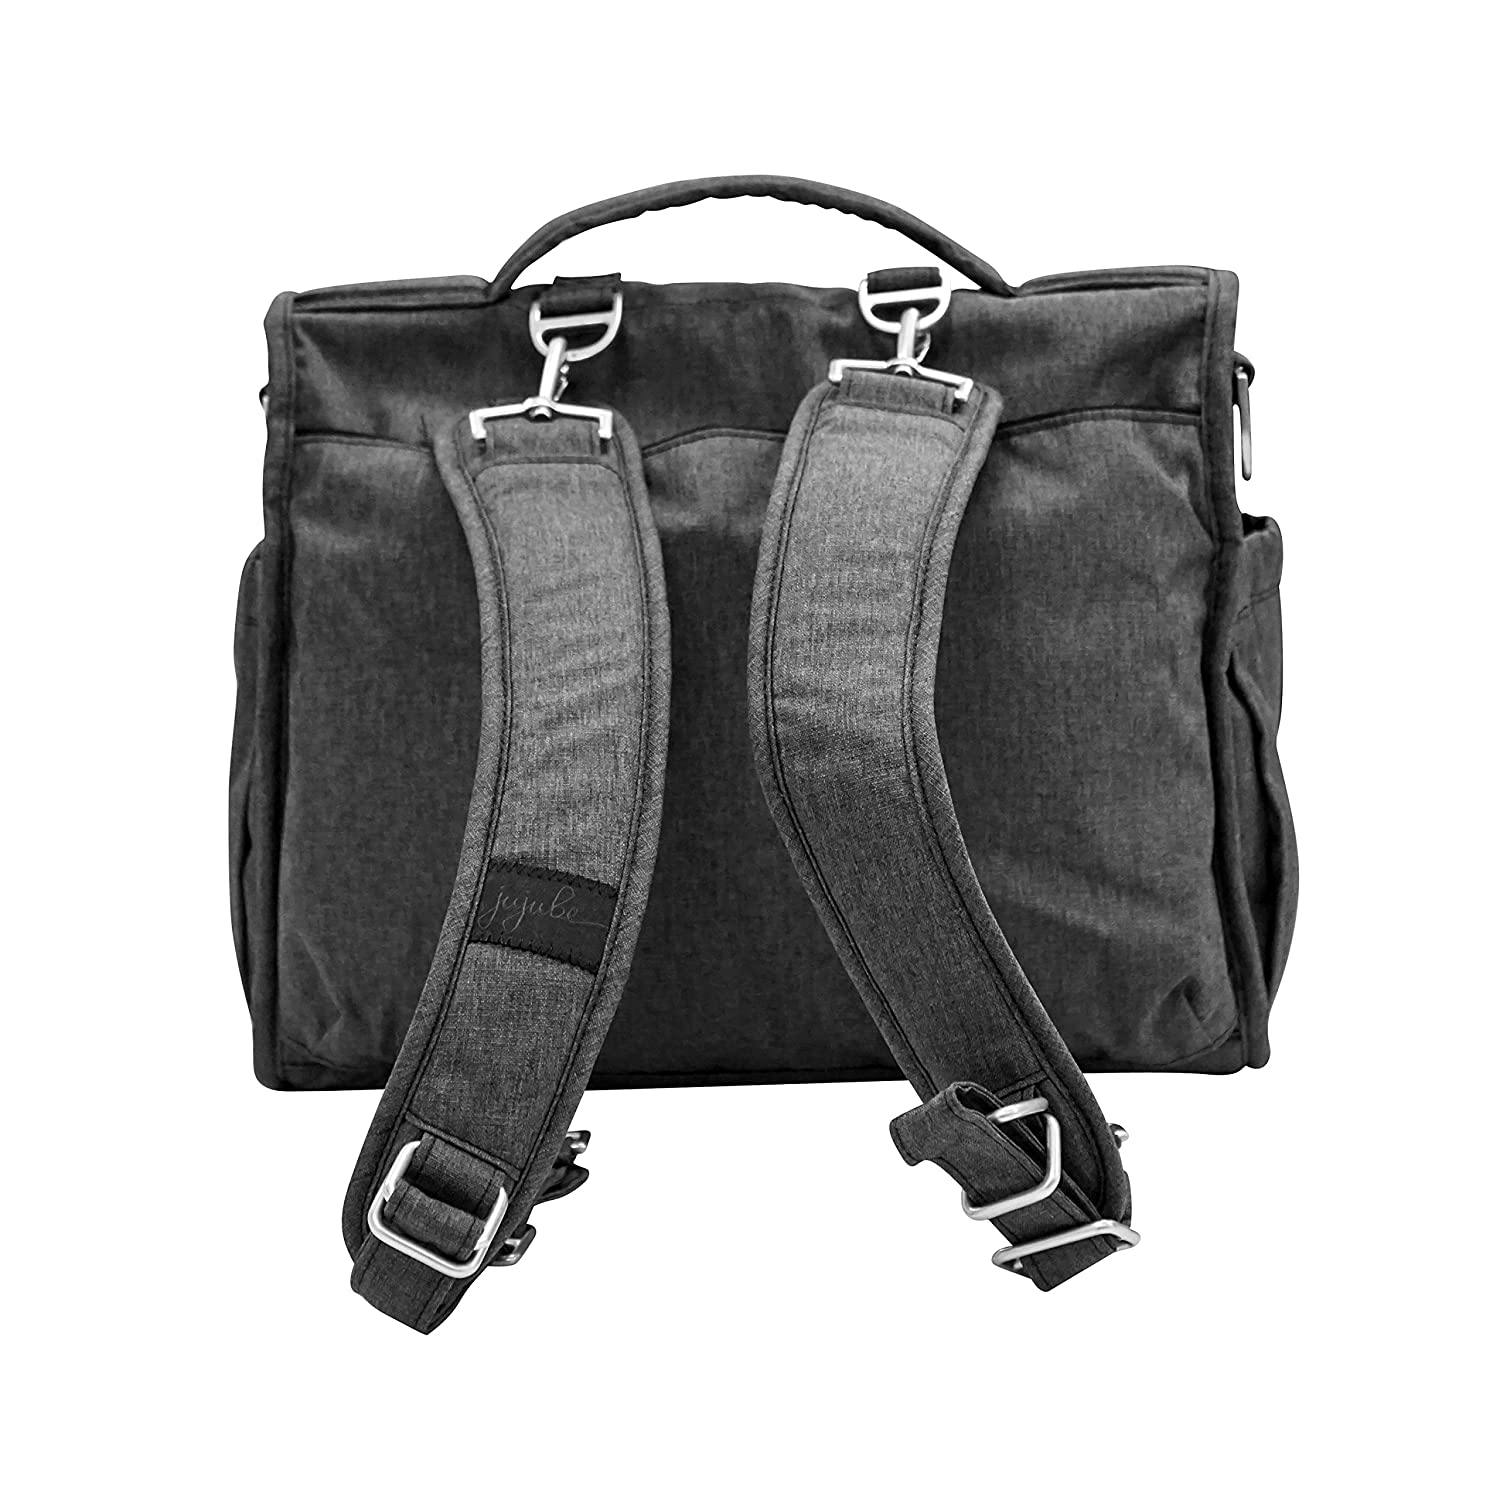 cba5ccf44eac JuJuBe BFF Multi-Functional Convertible Diaper Backpack/Messenger Bag, Onyx  Collection - Chrome